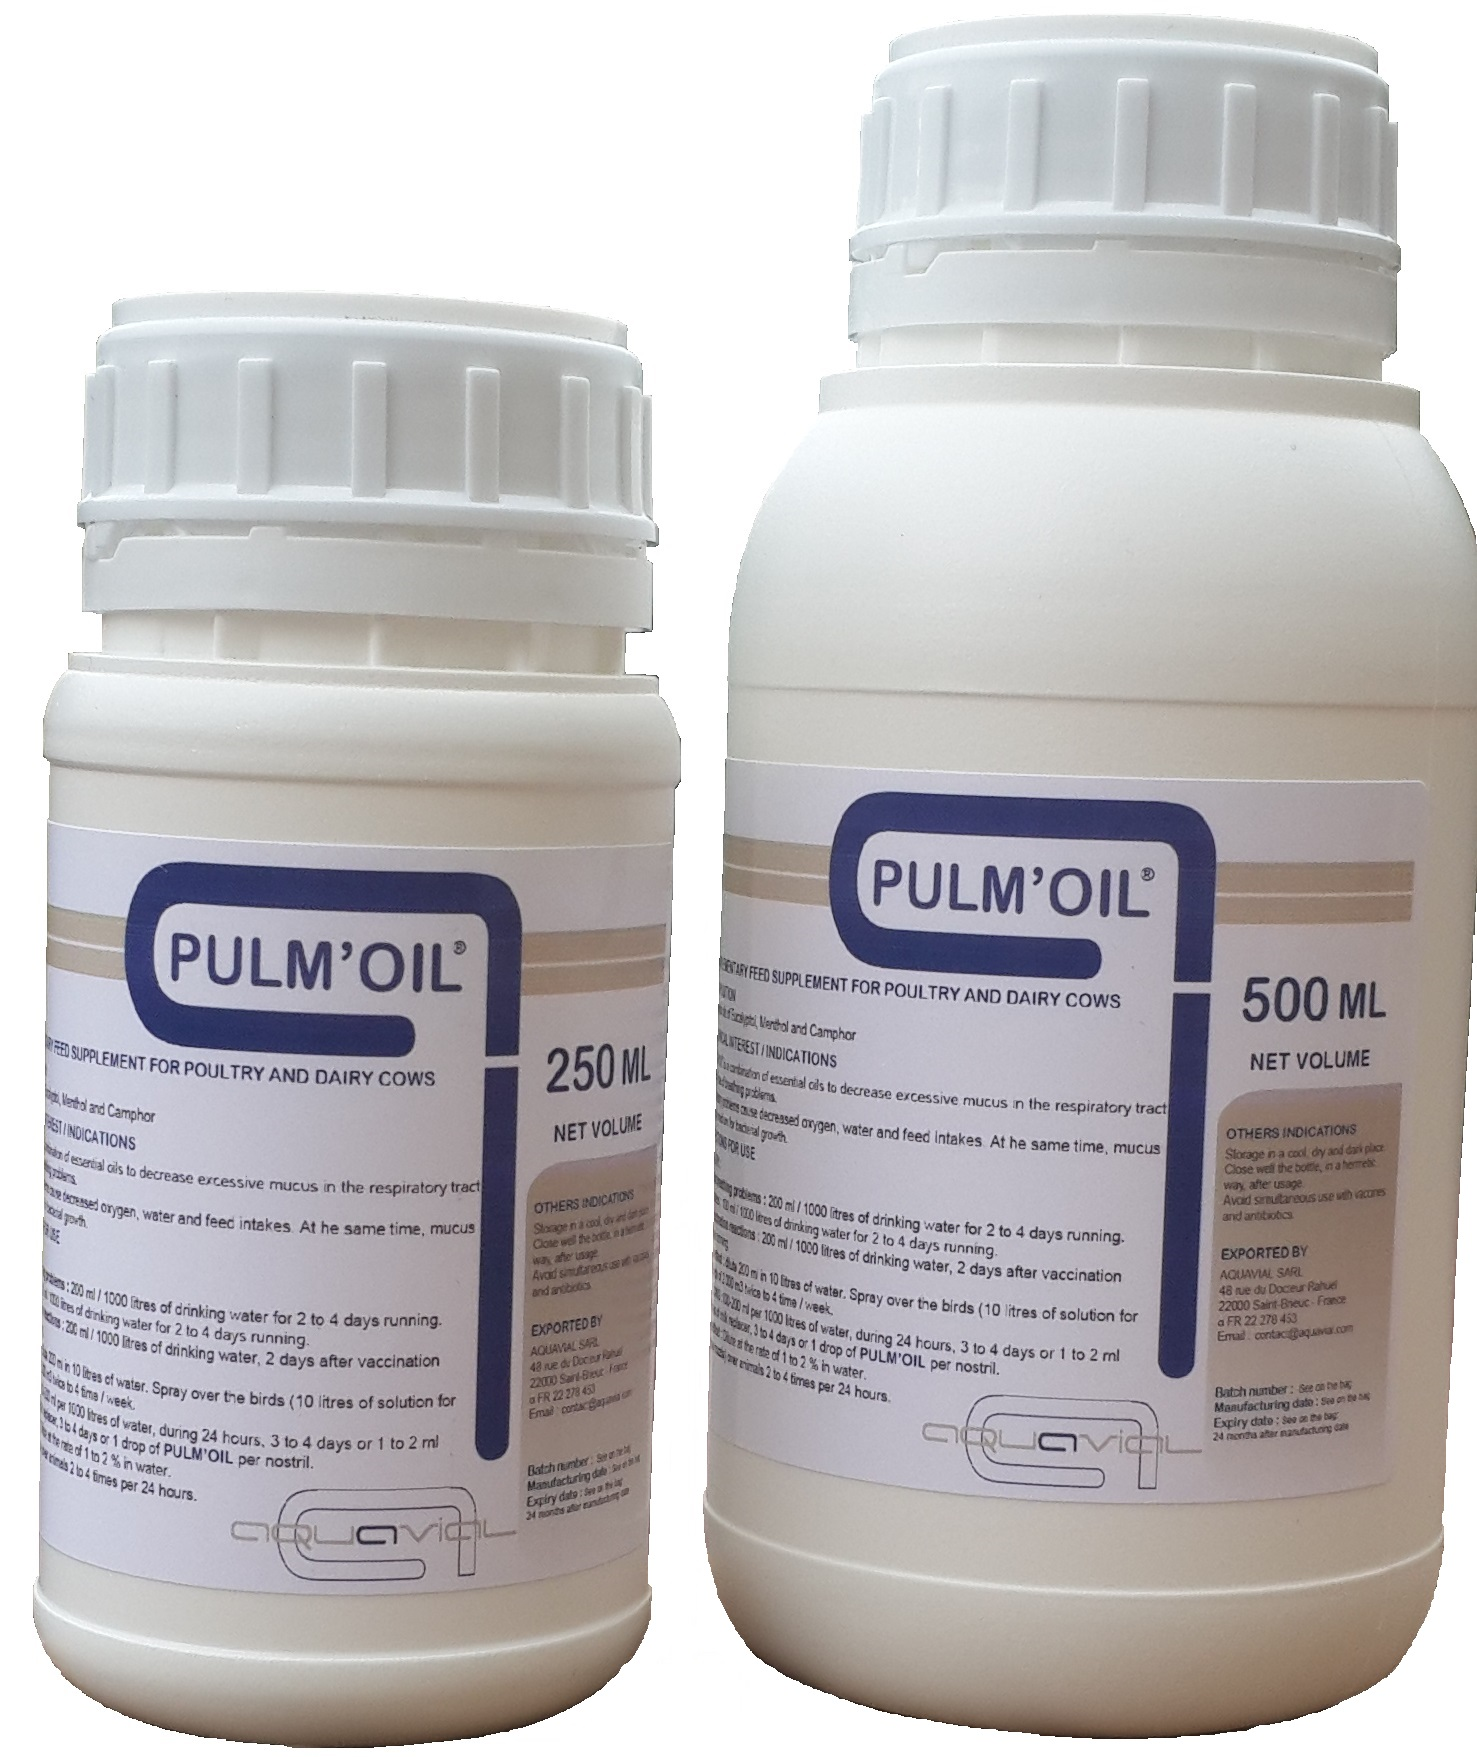 Pulm'Oil - Aquavial liquid nutritional supplement for poultry